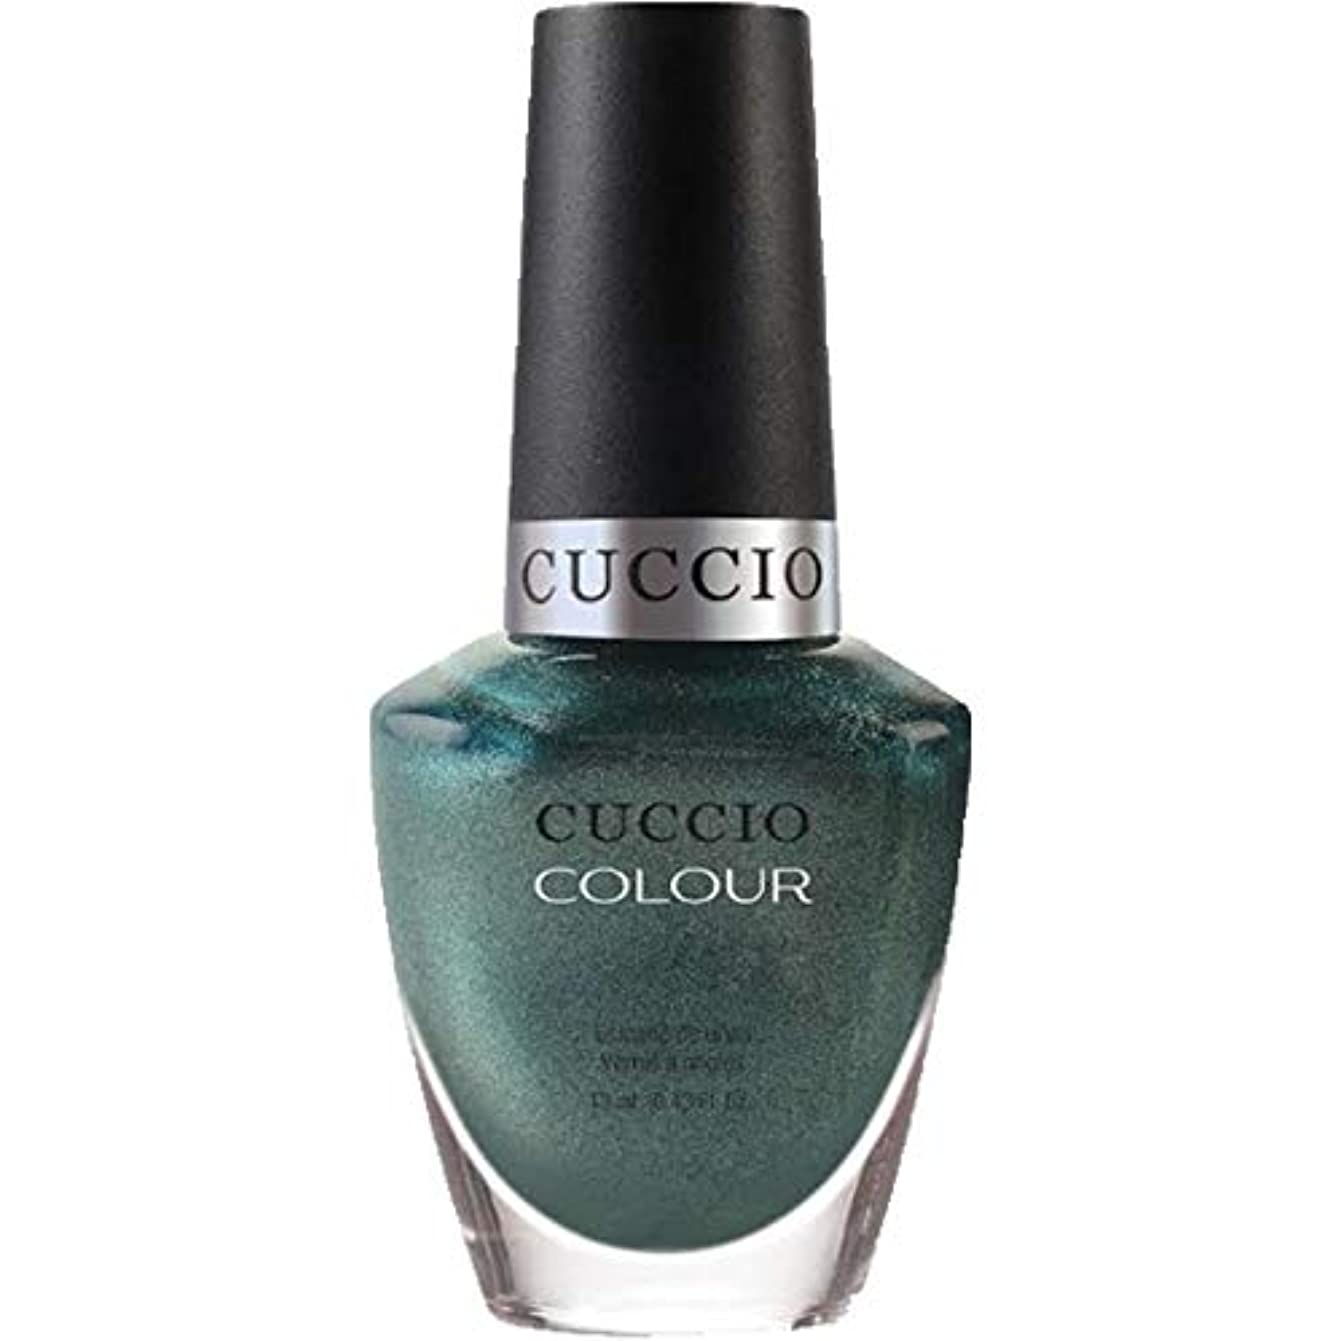 卑しい手段分配しますCuccio Colour Gloss Lacquer - Notorious - 0.43oz / 13ml